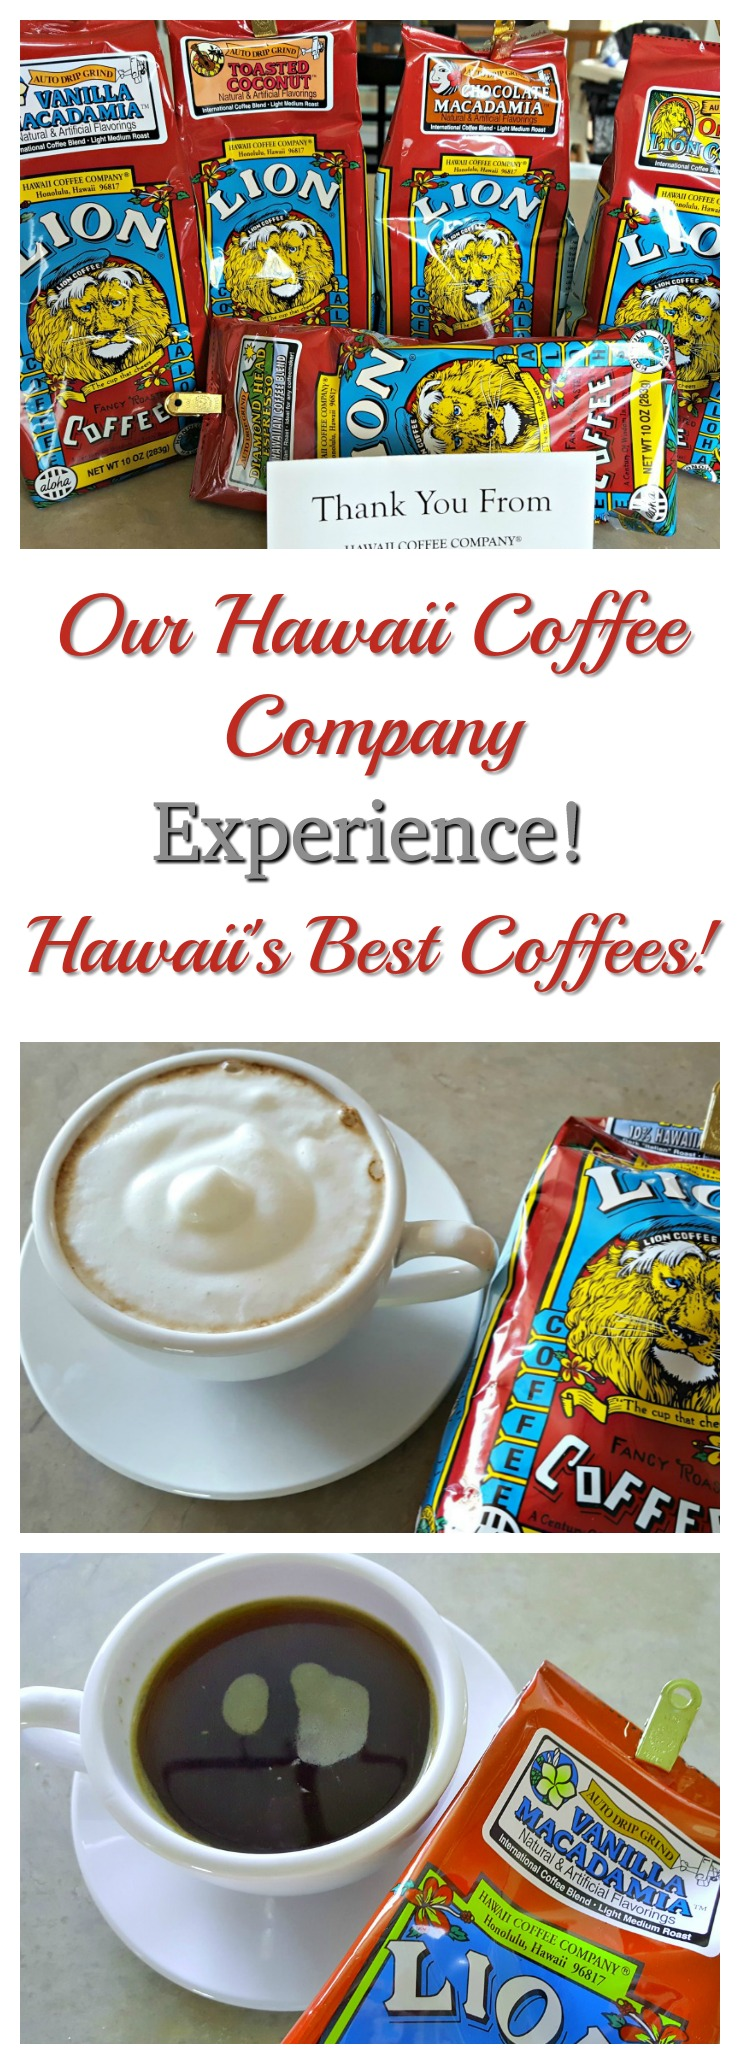 We tried the Hawaii Coffee Company's Coffee Club - If you LOVE coffee from Hawaii then this may be the club for you!